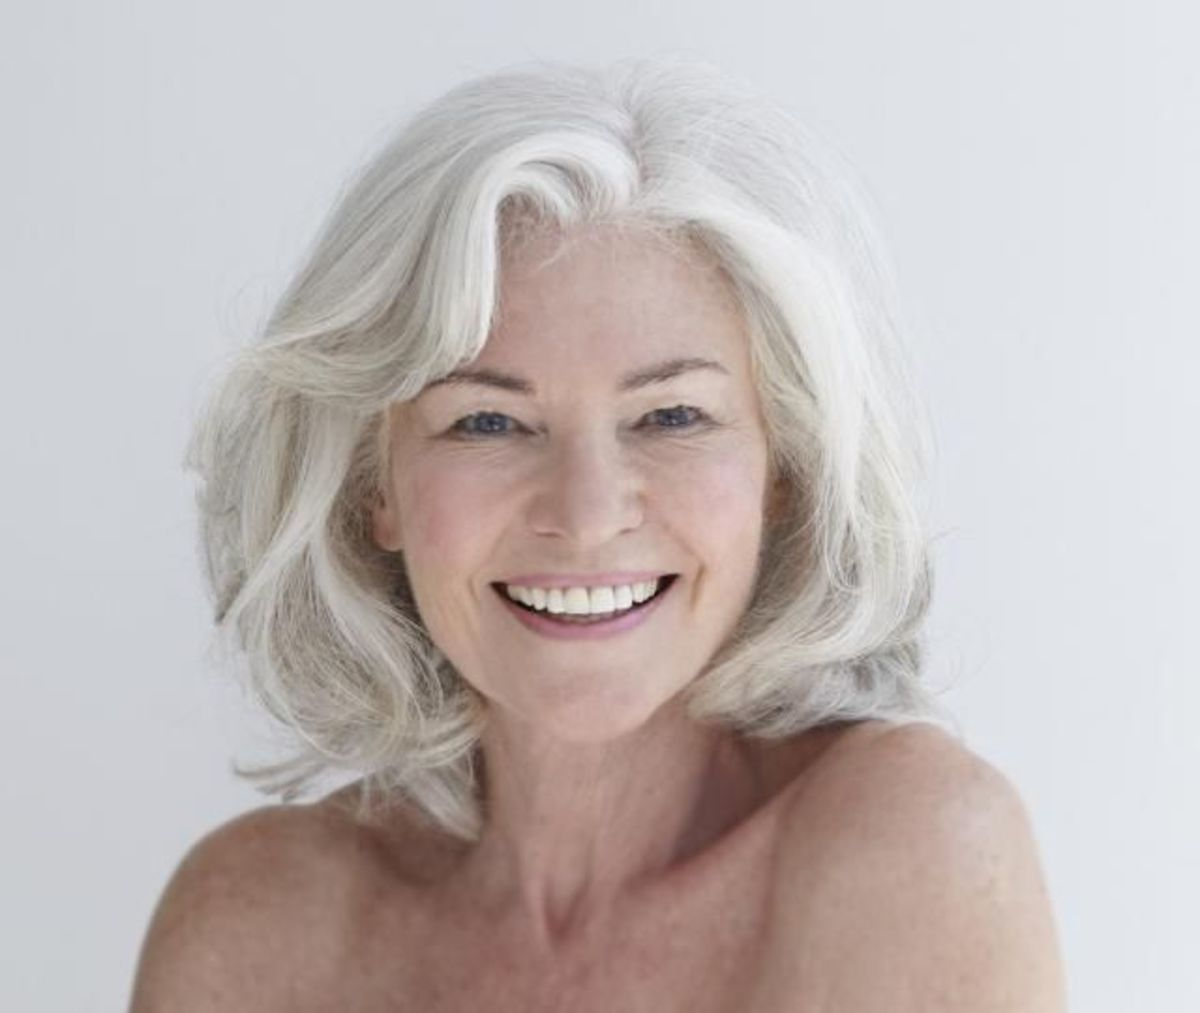 Silver Fox Hair Styles For Medium Texture Wavy Hair Bellatory Fashion And Beauty